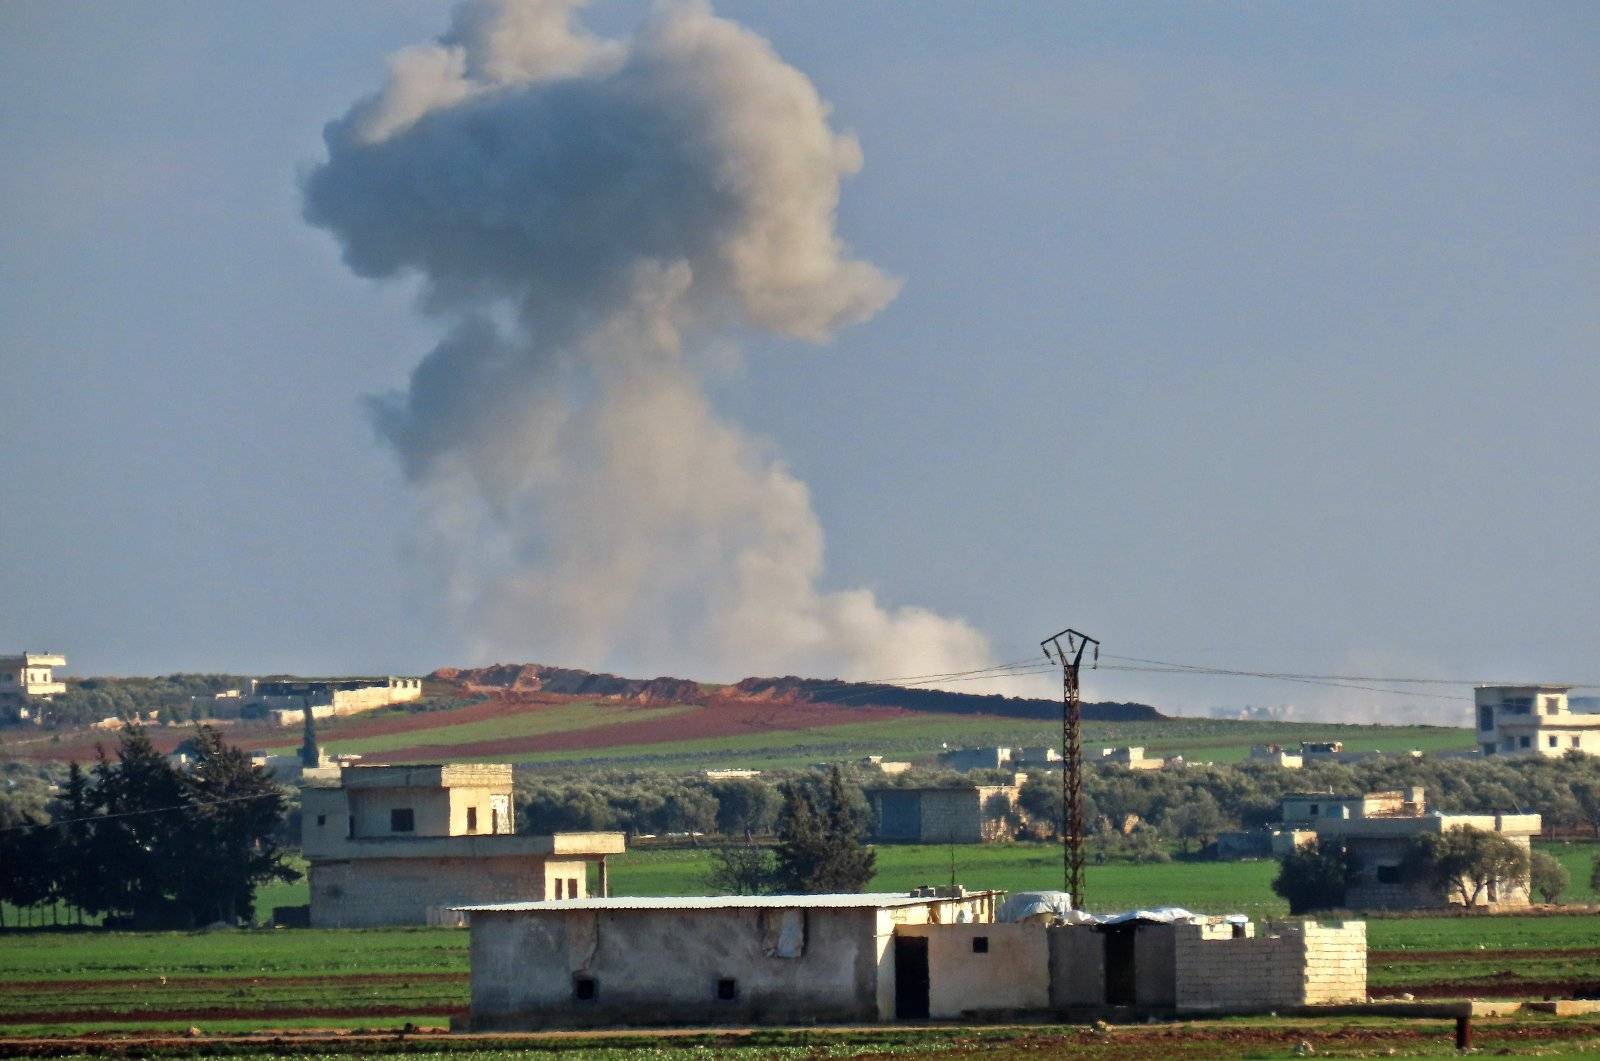 Smoke seen billowing following an airstrike by pro-regime forces near the town of Saraqib in the eastern part of the Idlib province in northwestern Syria, March 2, 2020. (AFP Photo)